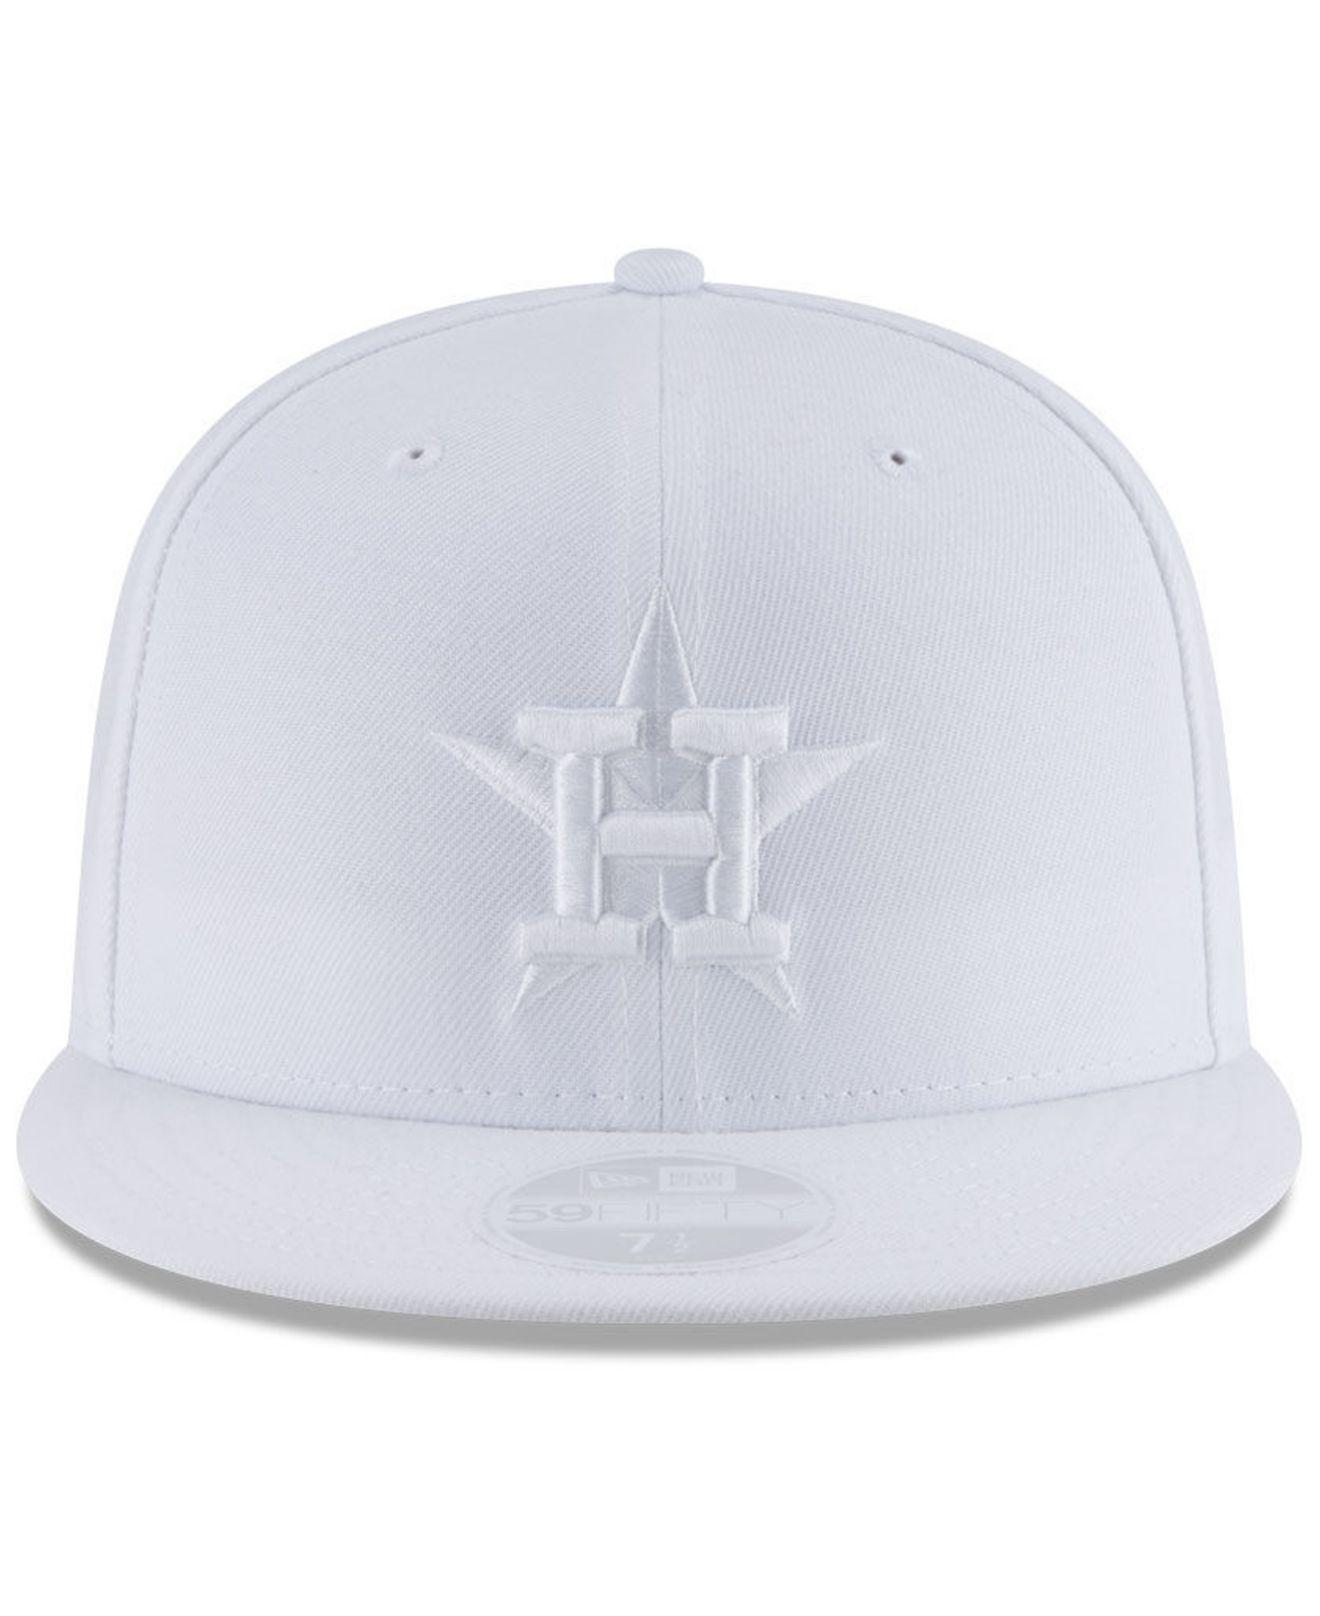 new concept 8a0cf a40a1 Lyst - KTZ Houston Astros White Out 59fifty Fitted Cap in White for Men